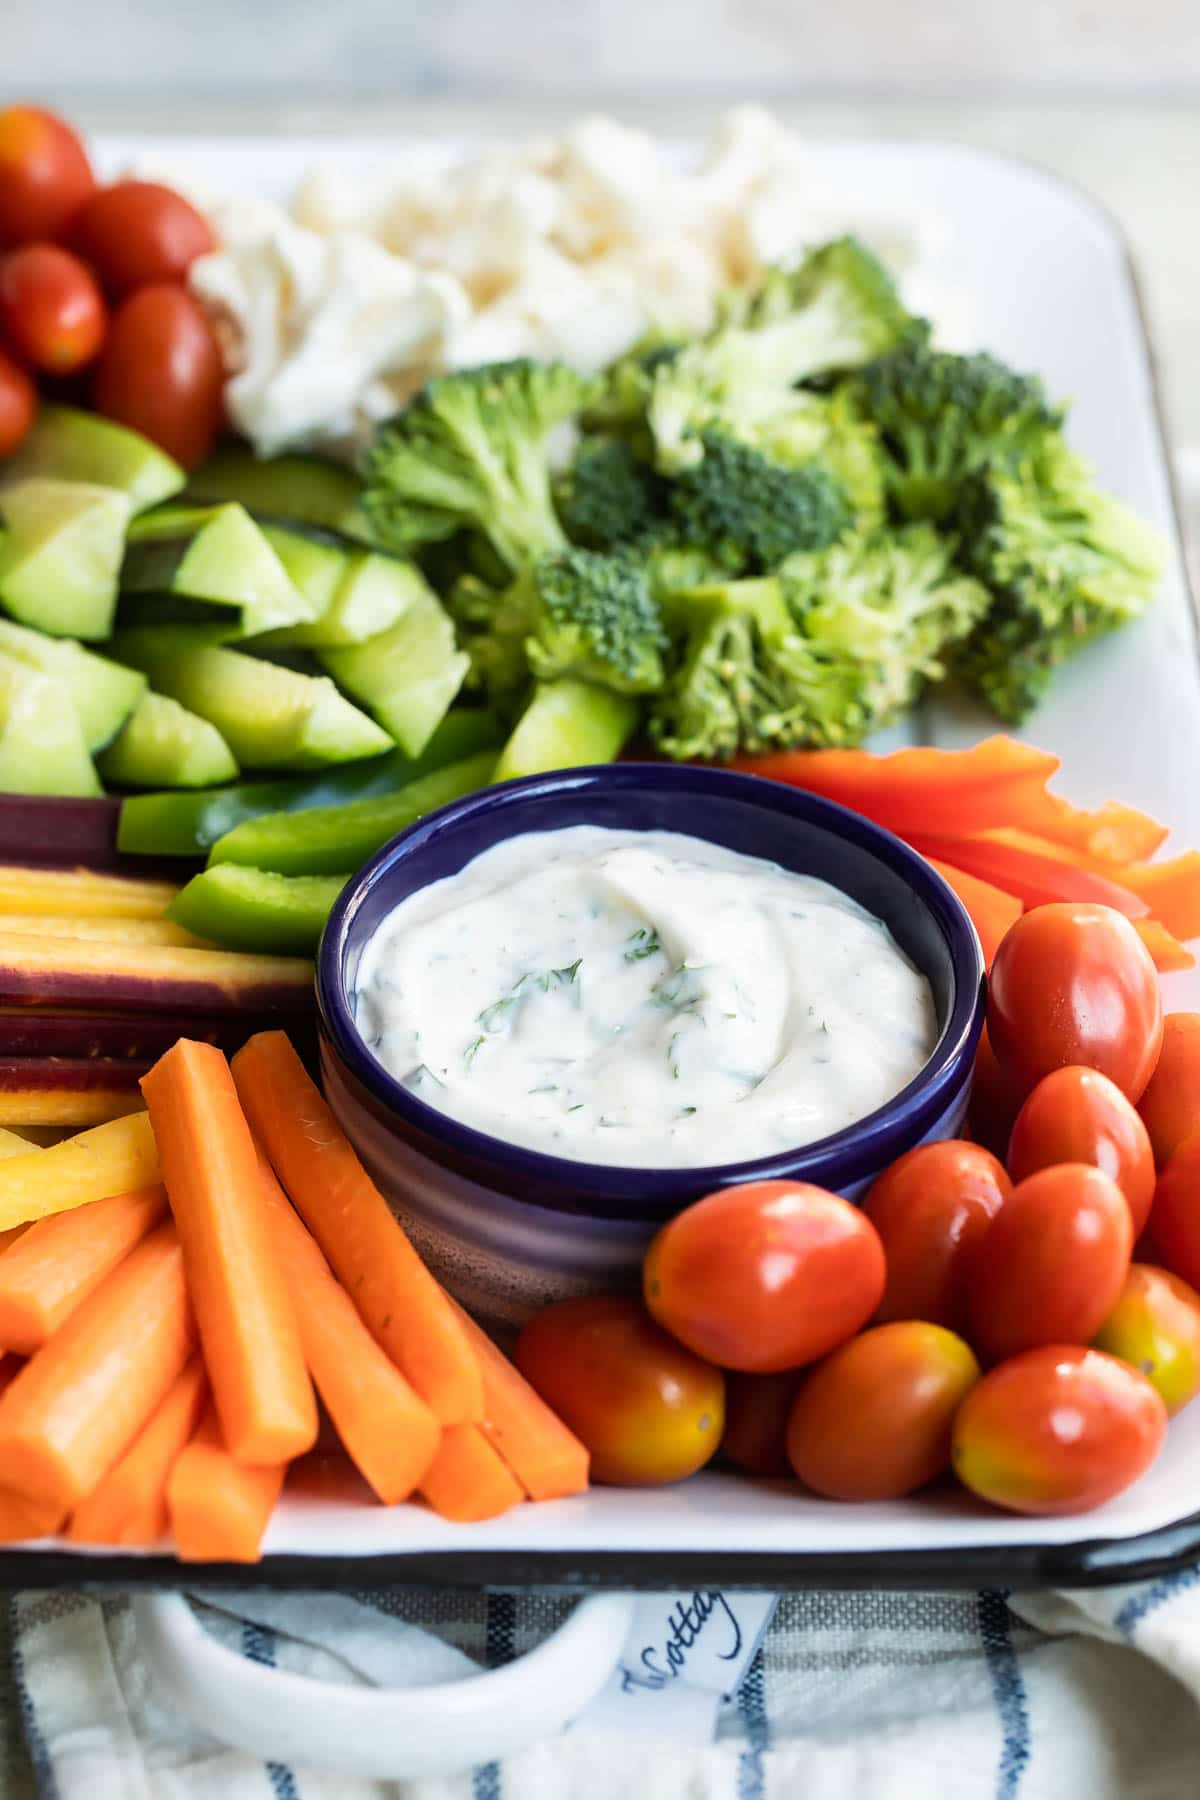 Veggie dip in a navy bowl bowl on a platter surrounded by vegetables.